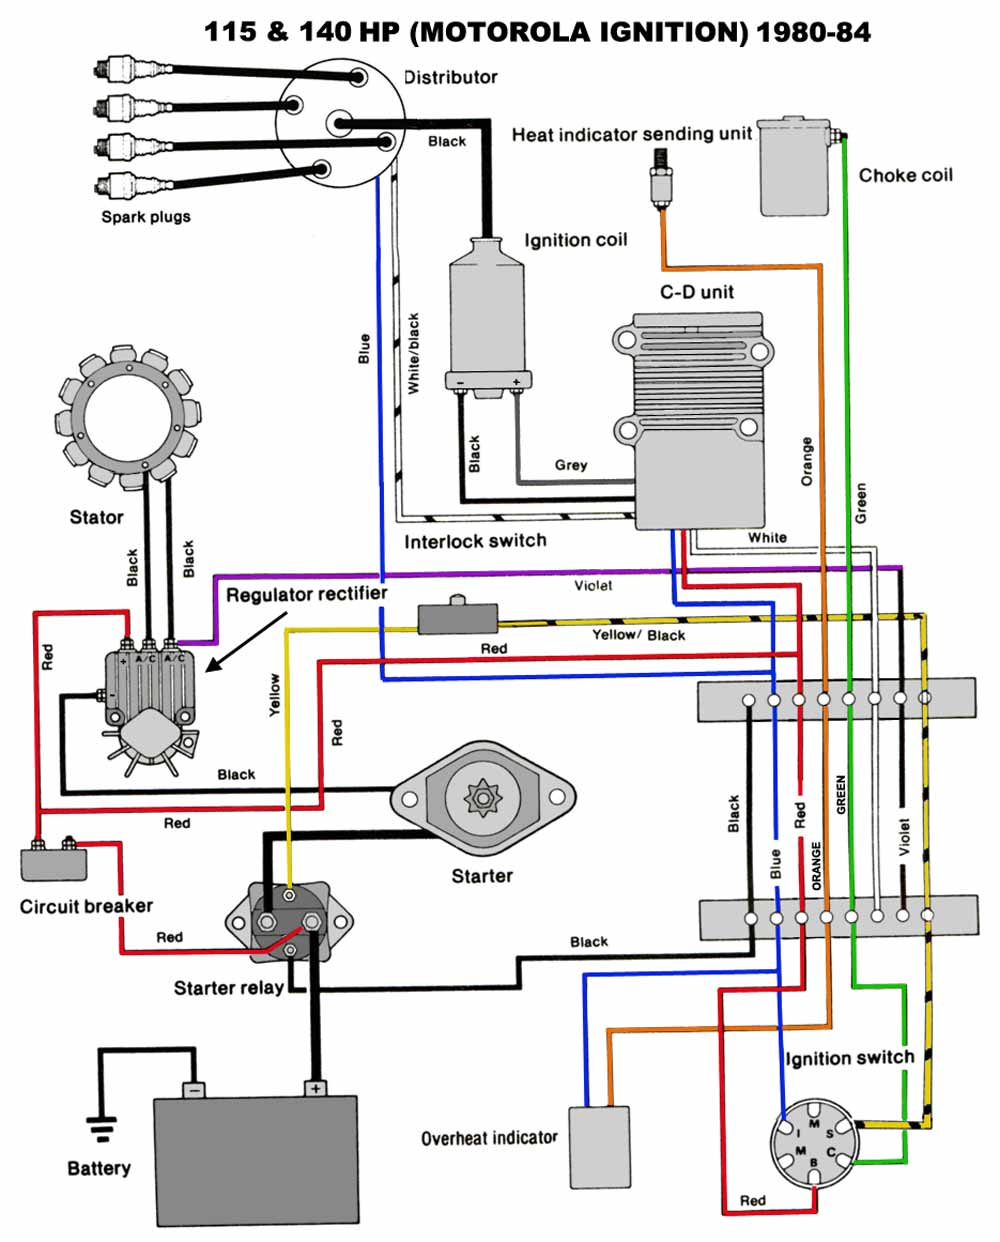 Force 50 Wiring Diagram Great Installation Of Peugeot Jetforce 50cc Mercury 40 Hp Schematic Name Rh 6 2 5 Systembeimroulette De 1989 Outboard Light Switch